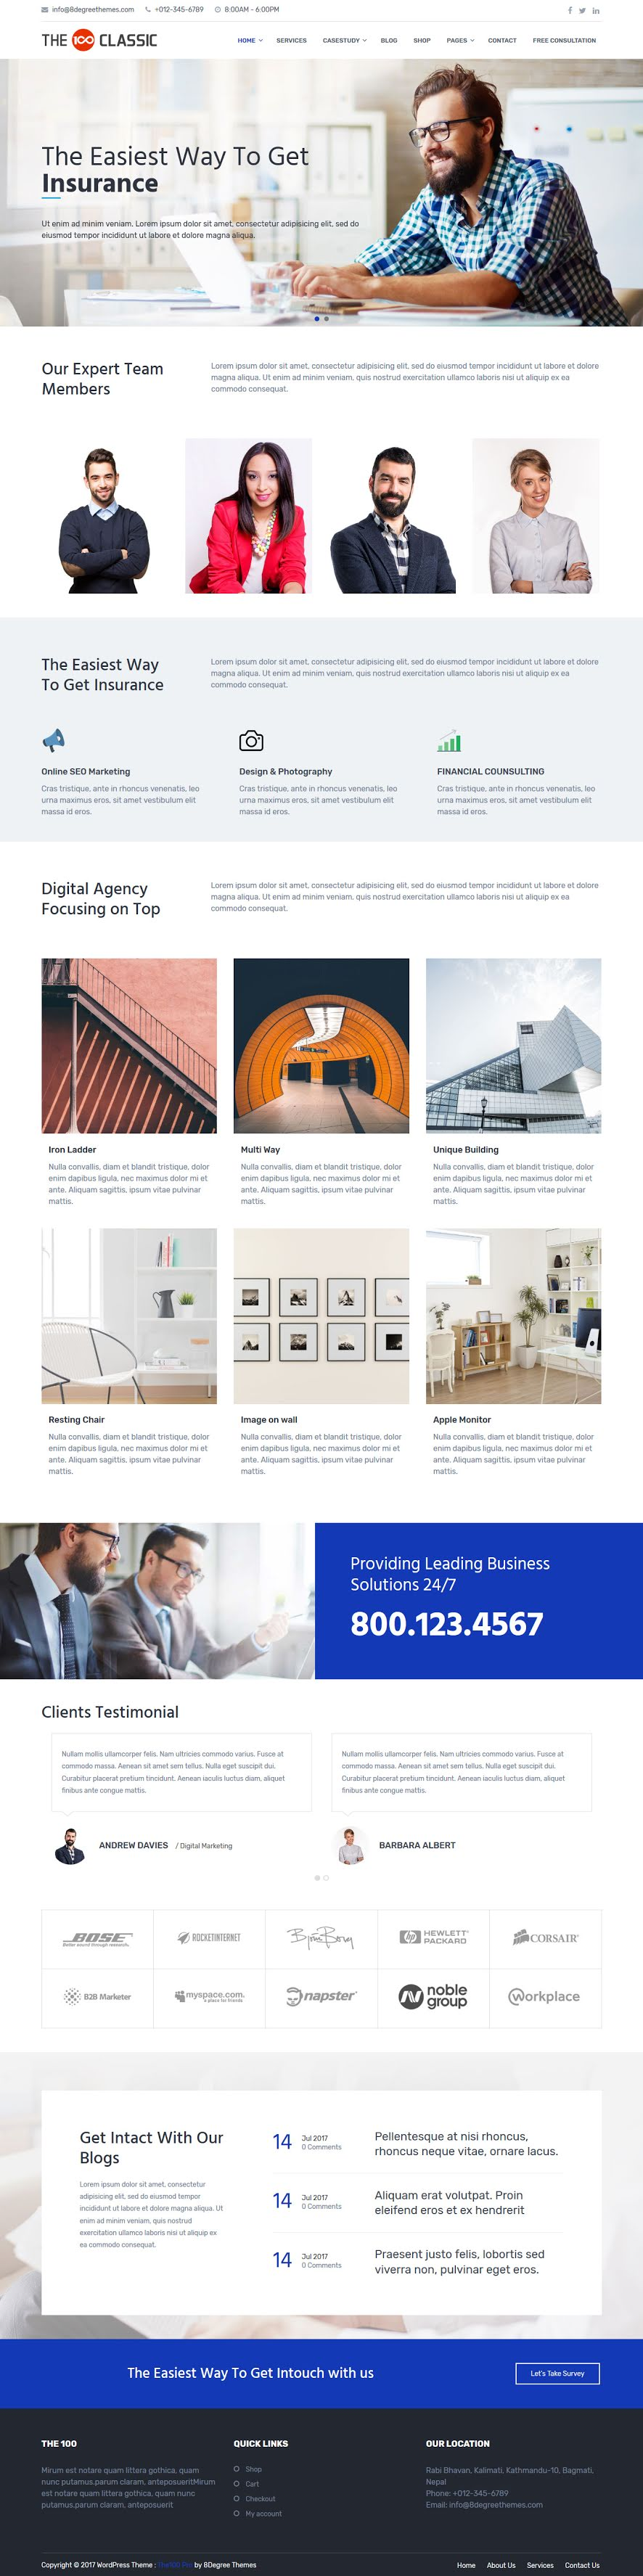 The 100 Pro - Premium Agency WordPress Themes and Templates